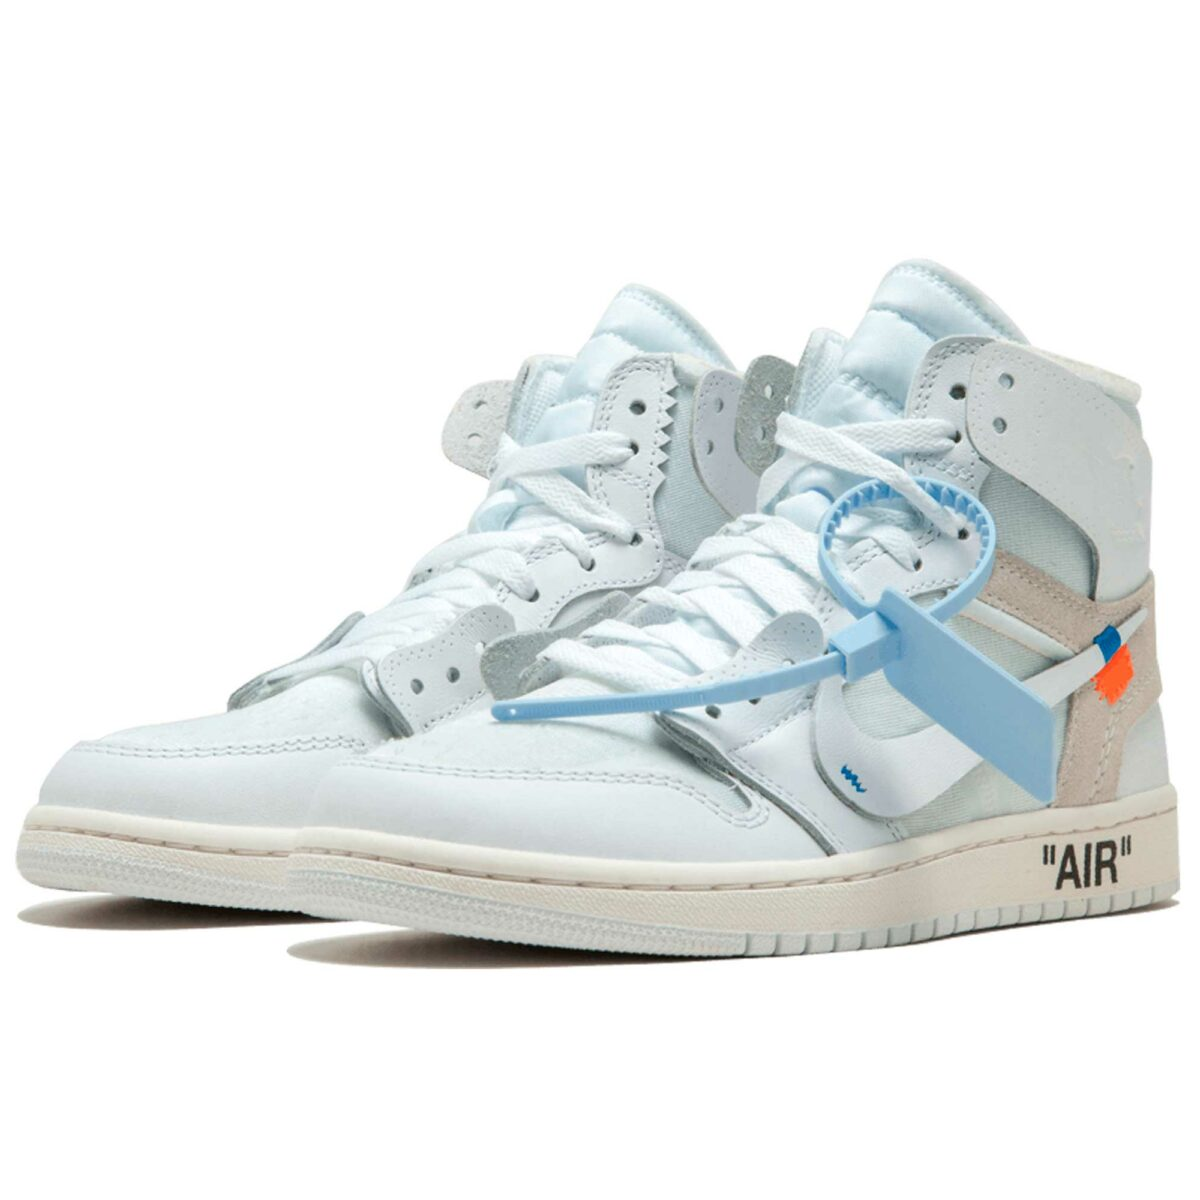 nike air Jordan 1 x off white the 10 white aq8296_100 купить